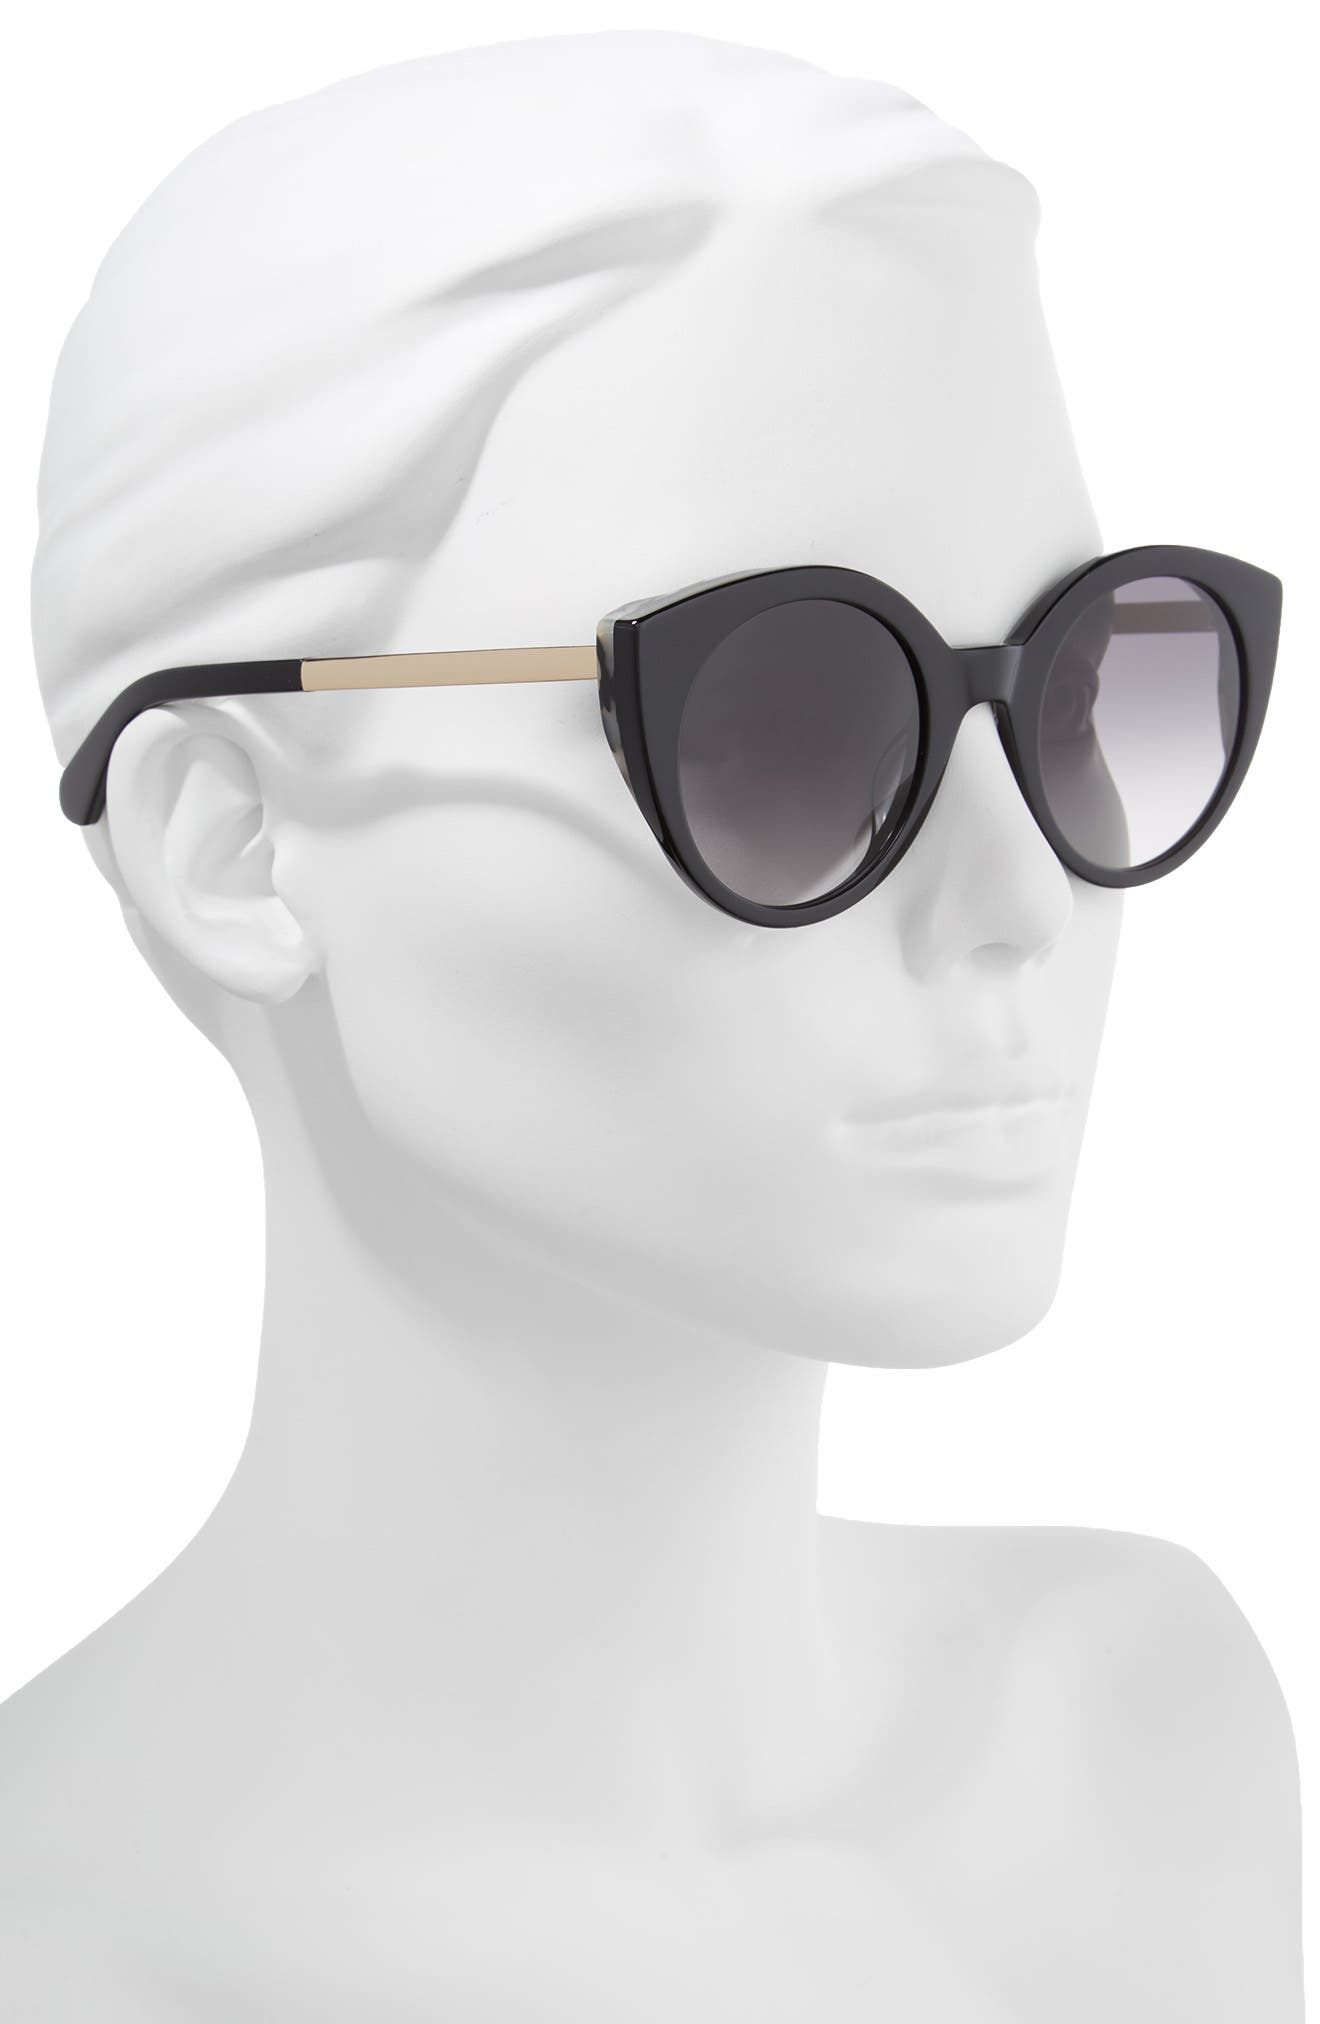 norinas 50mm cat eye sunglasses,                             Alternate thumbnail 2, color,                             001